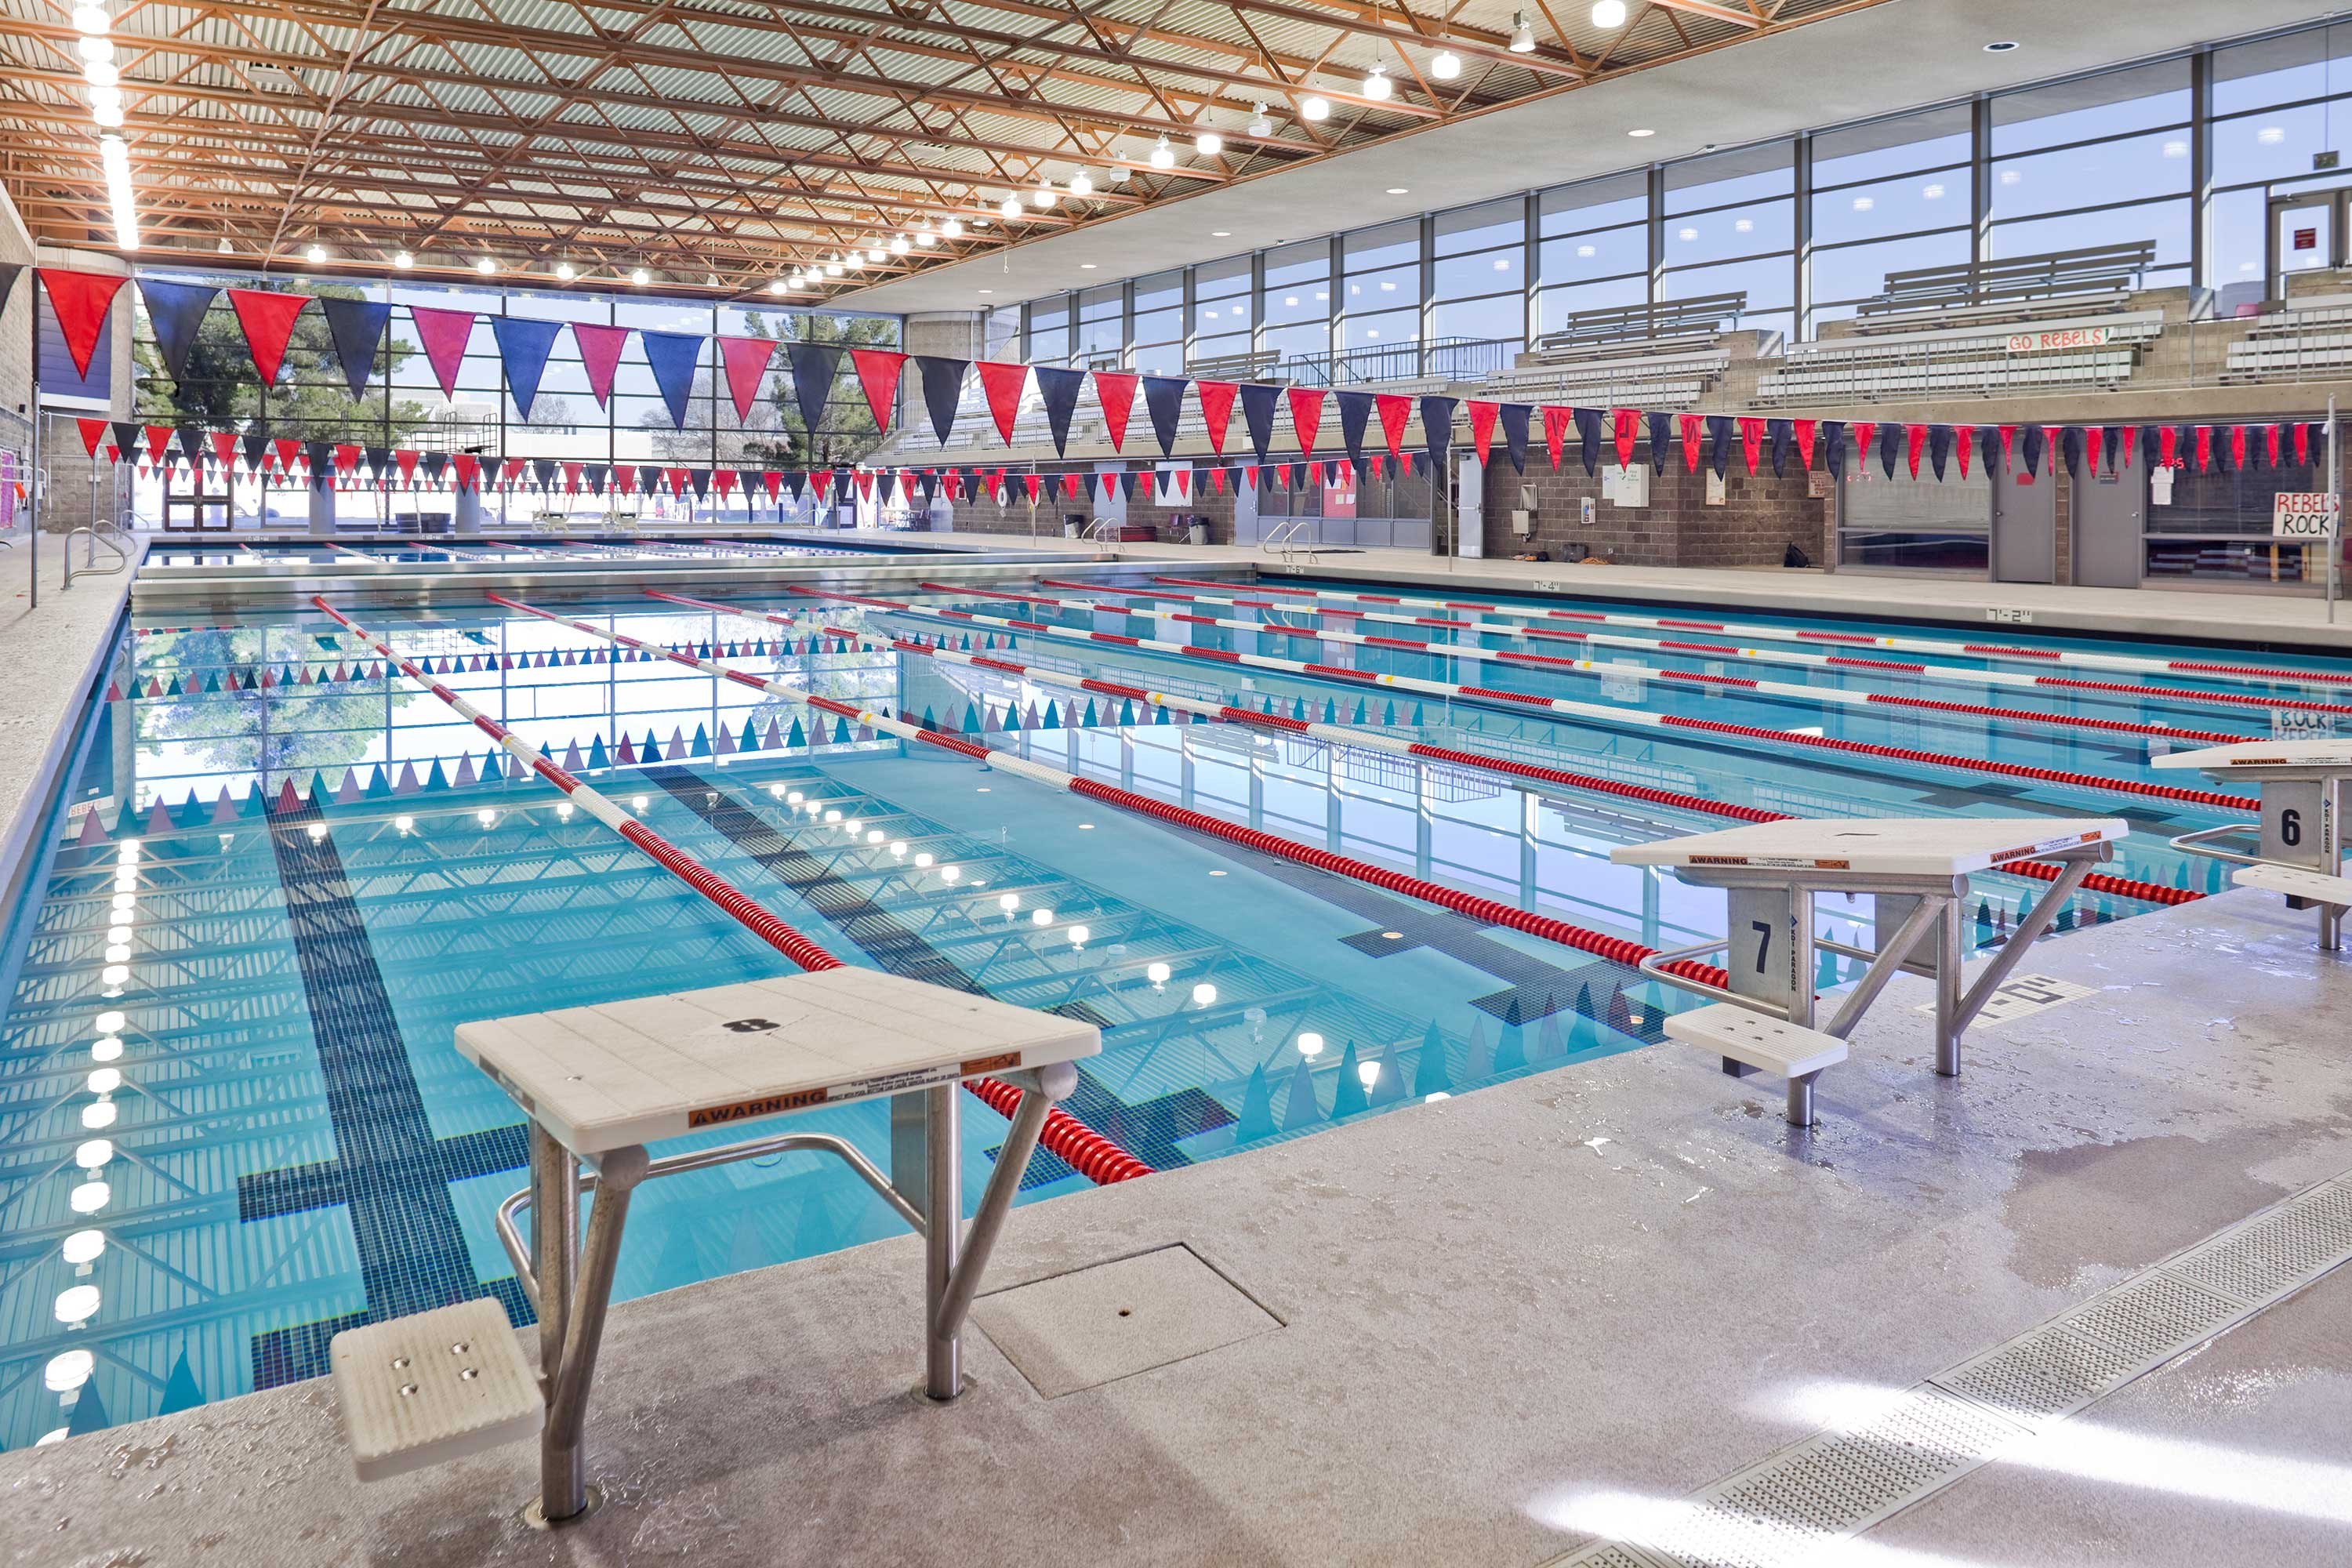 UNLV McDermott Pool